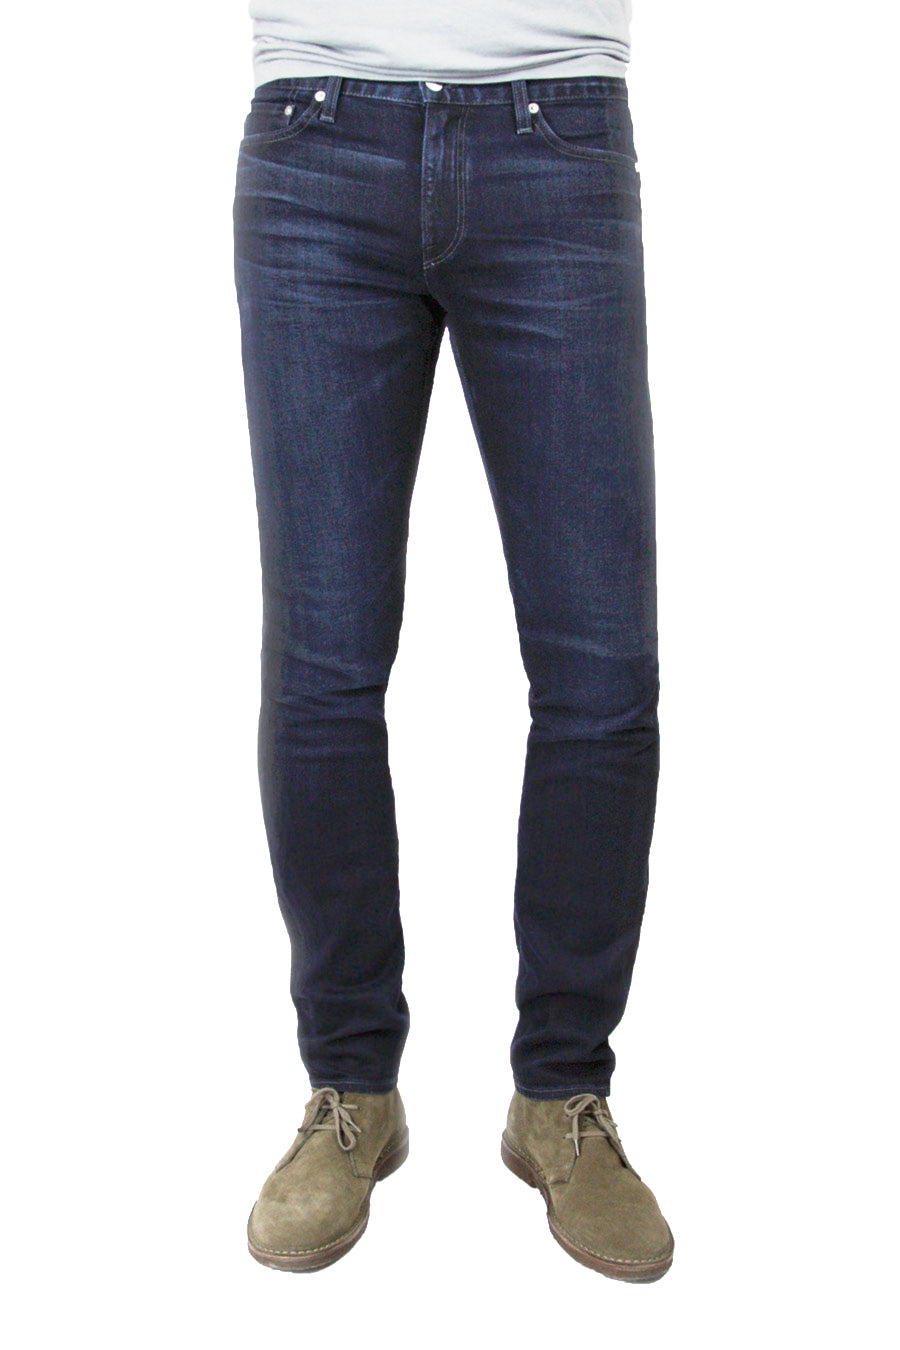 S.M.N Studio's Hunter in Reid Men's Jeans - Slim dark indigo wash jean with slight contrast fading and whiskers